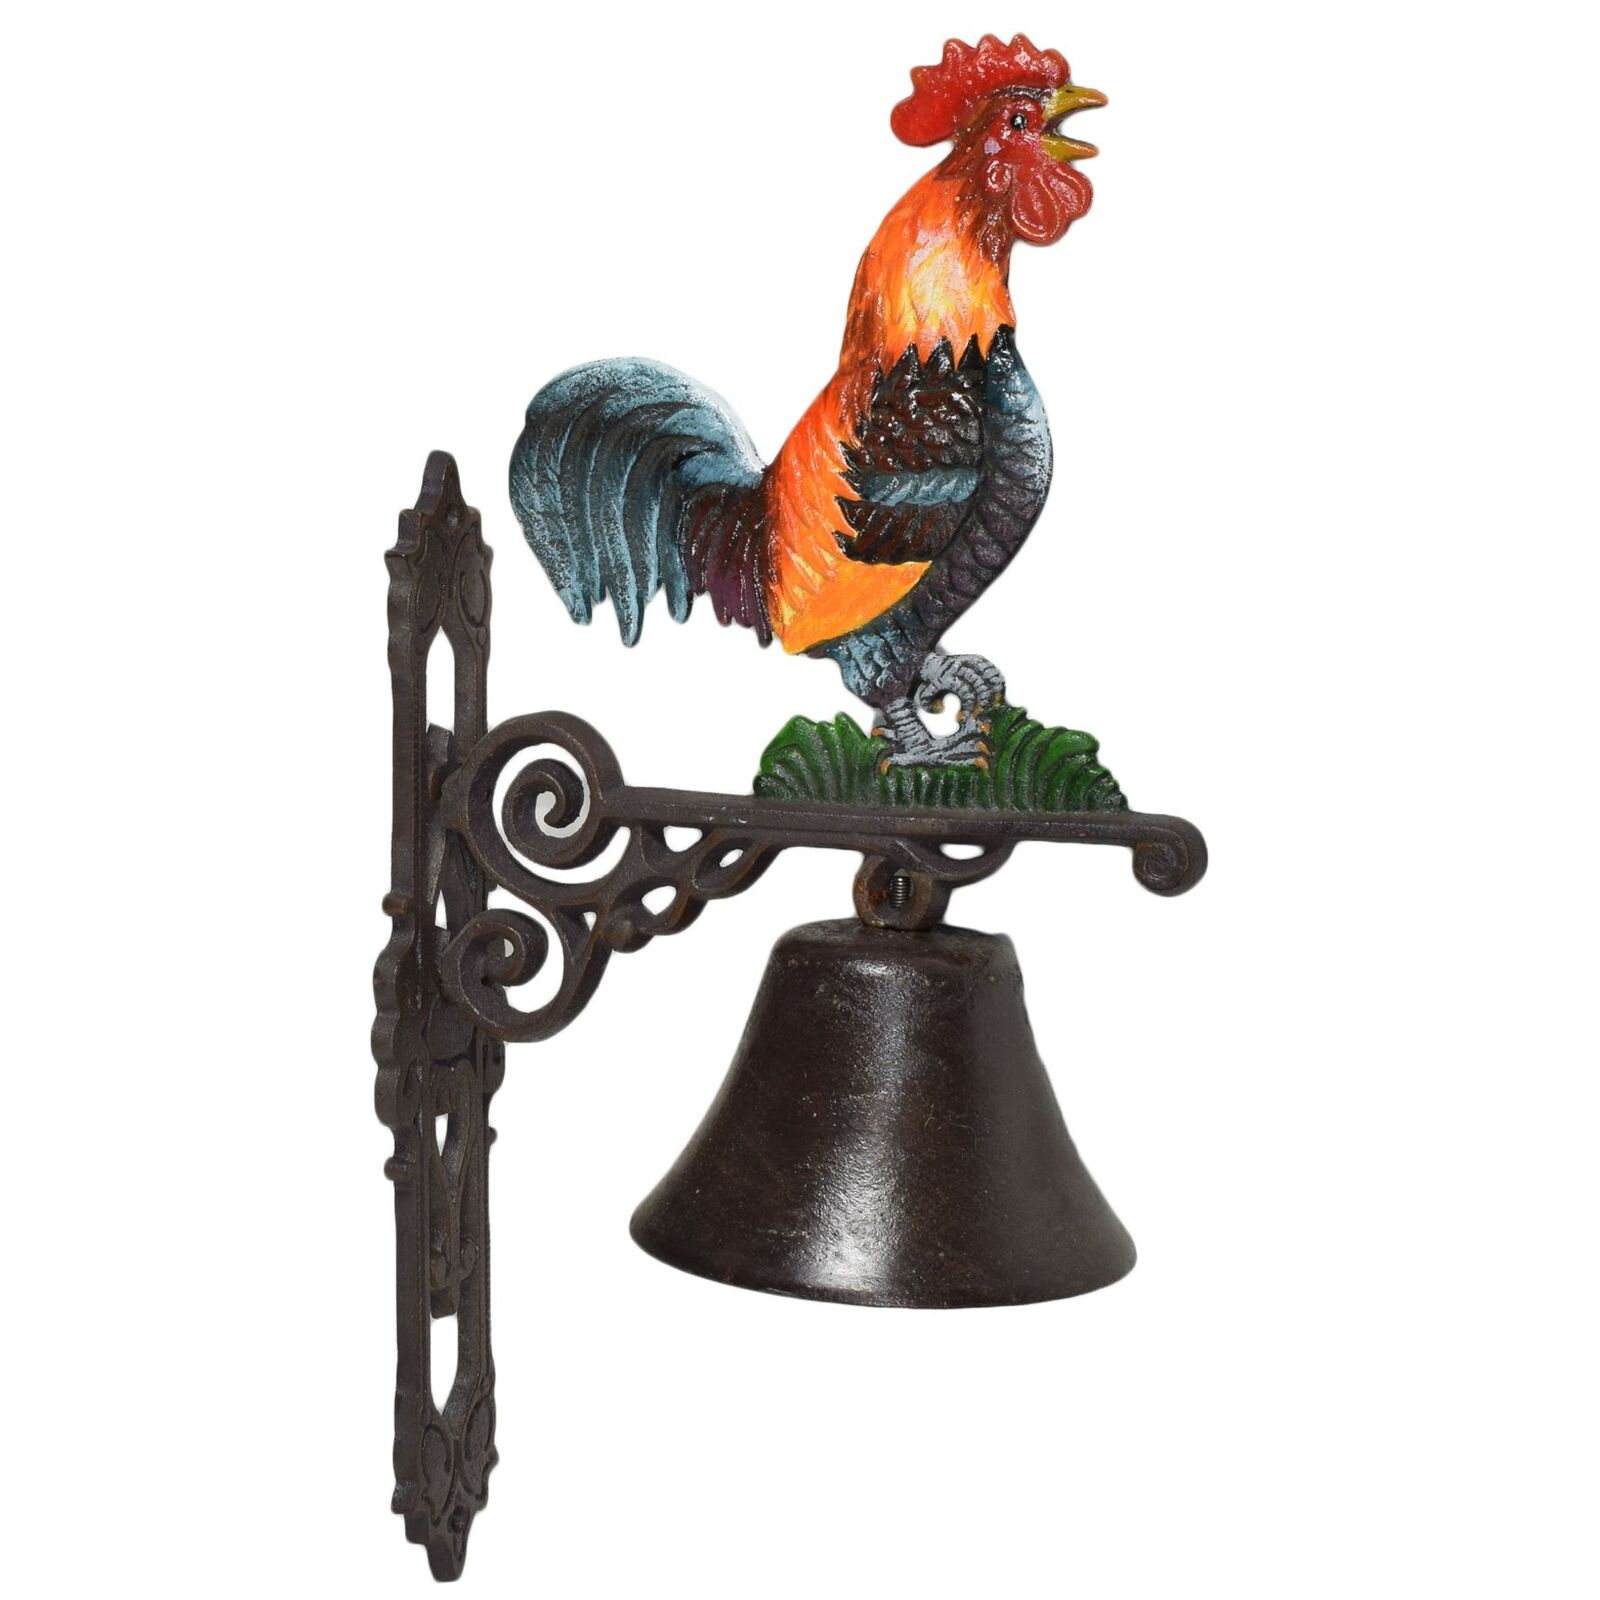 Cockerel Rooster Bell signo de hierro fundido Placa Puerta Parojo Estaca Gate House